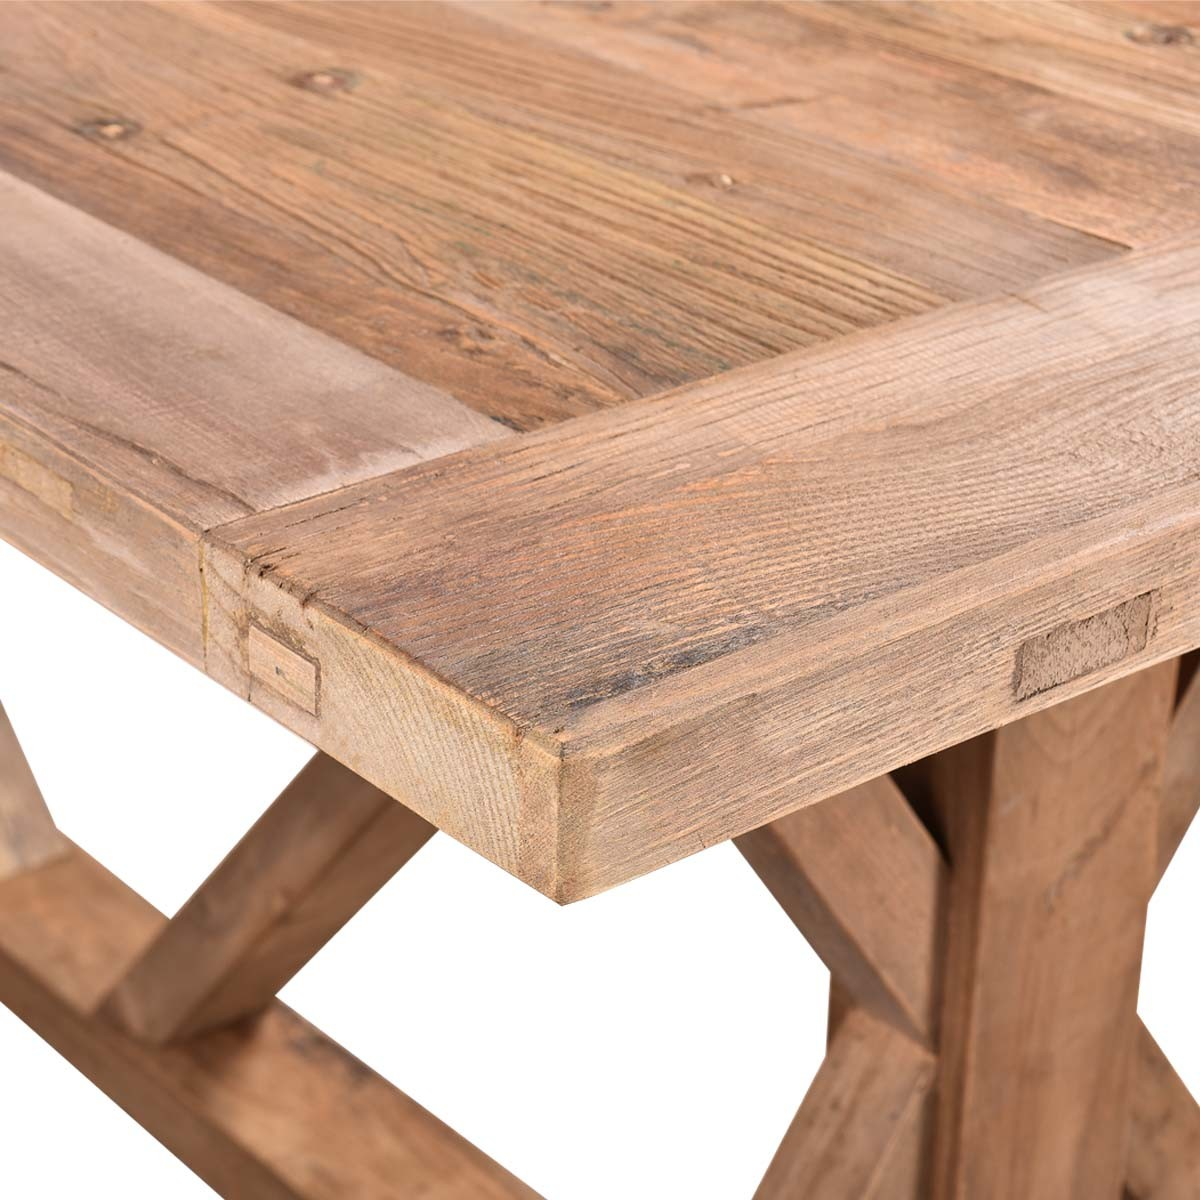 Lemans Rustic Dining Table 200cm Reclaimed Elm Wood Natural French